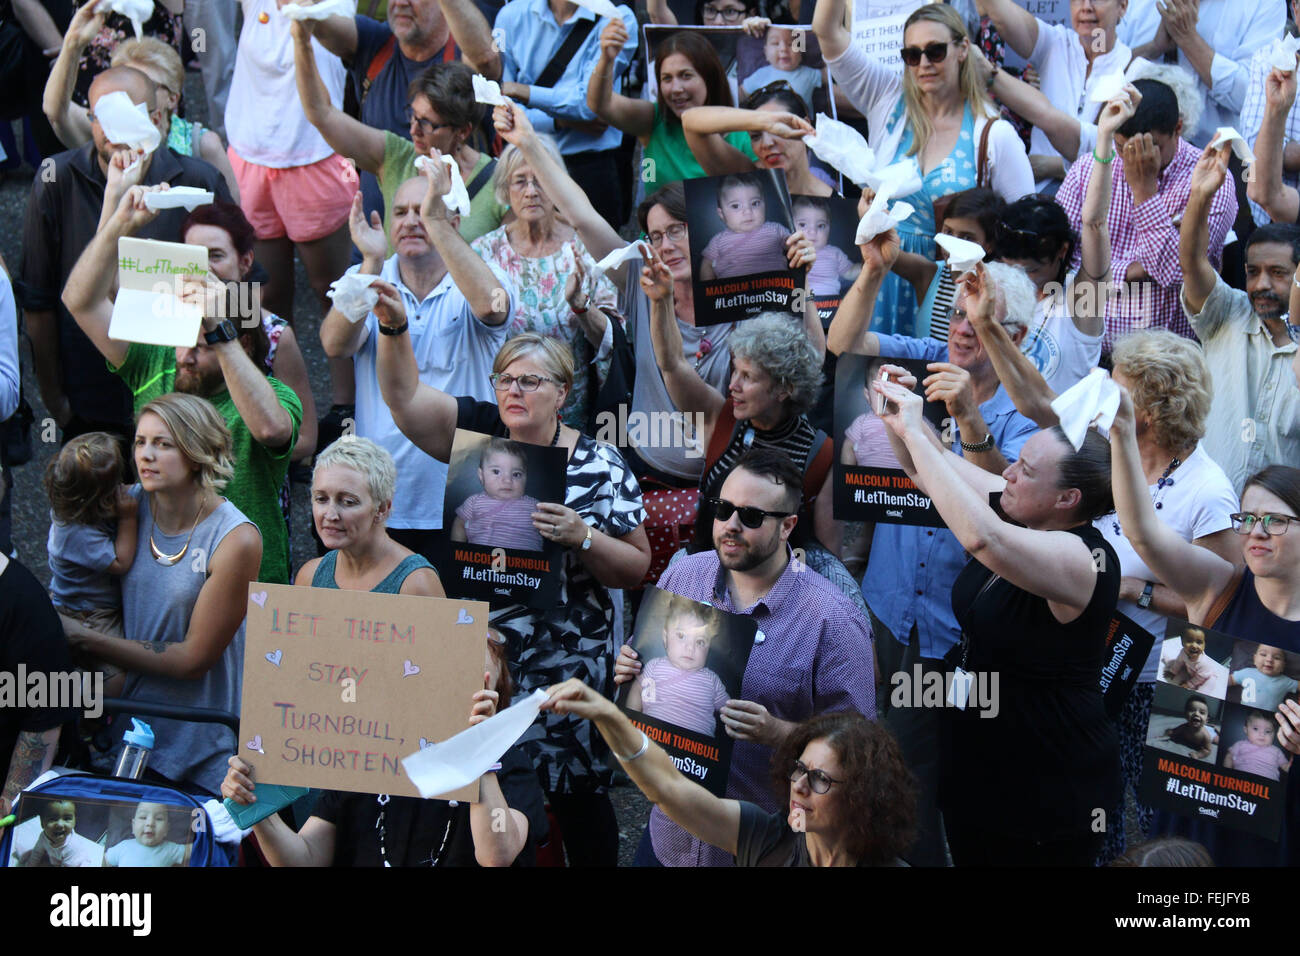 Sydney, Australia. 8 February 2016. Protests were held across Australia in support of letting refugees stay in the - Stock Image